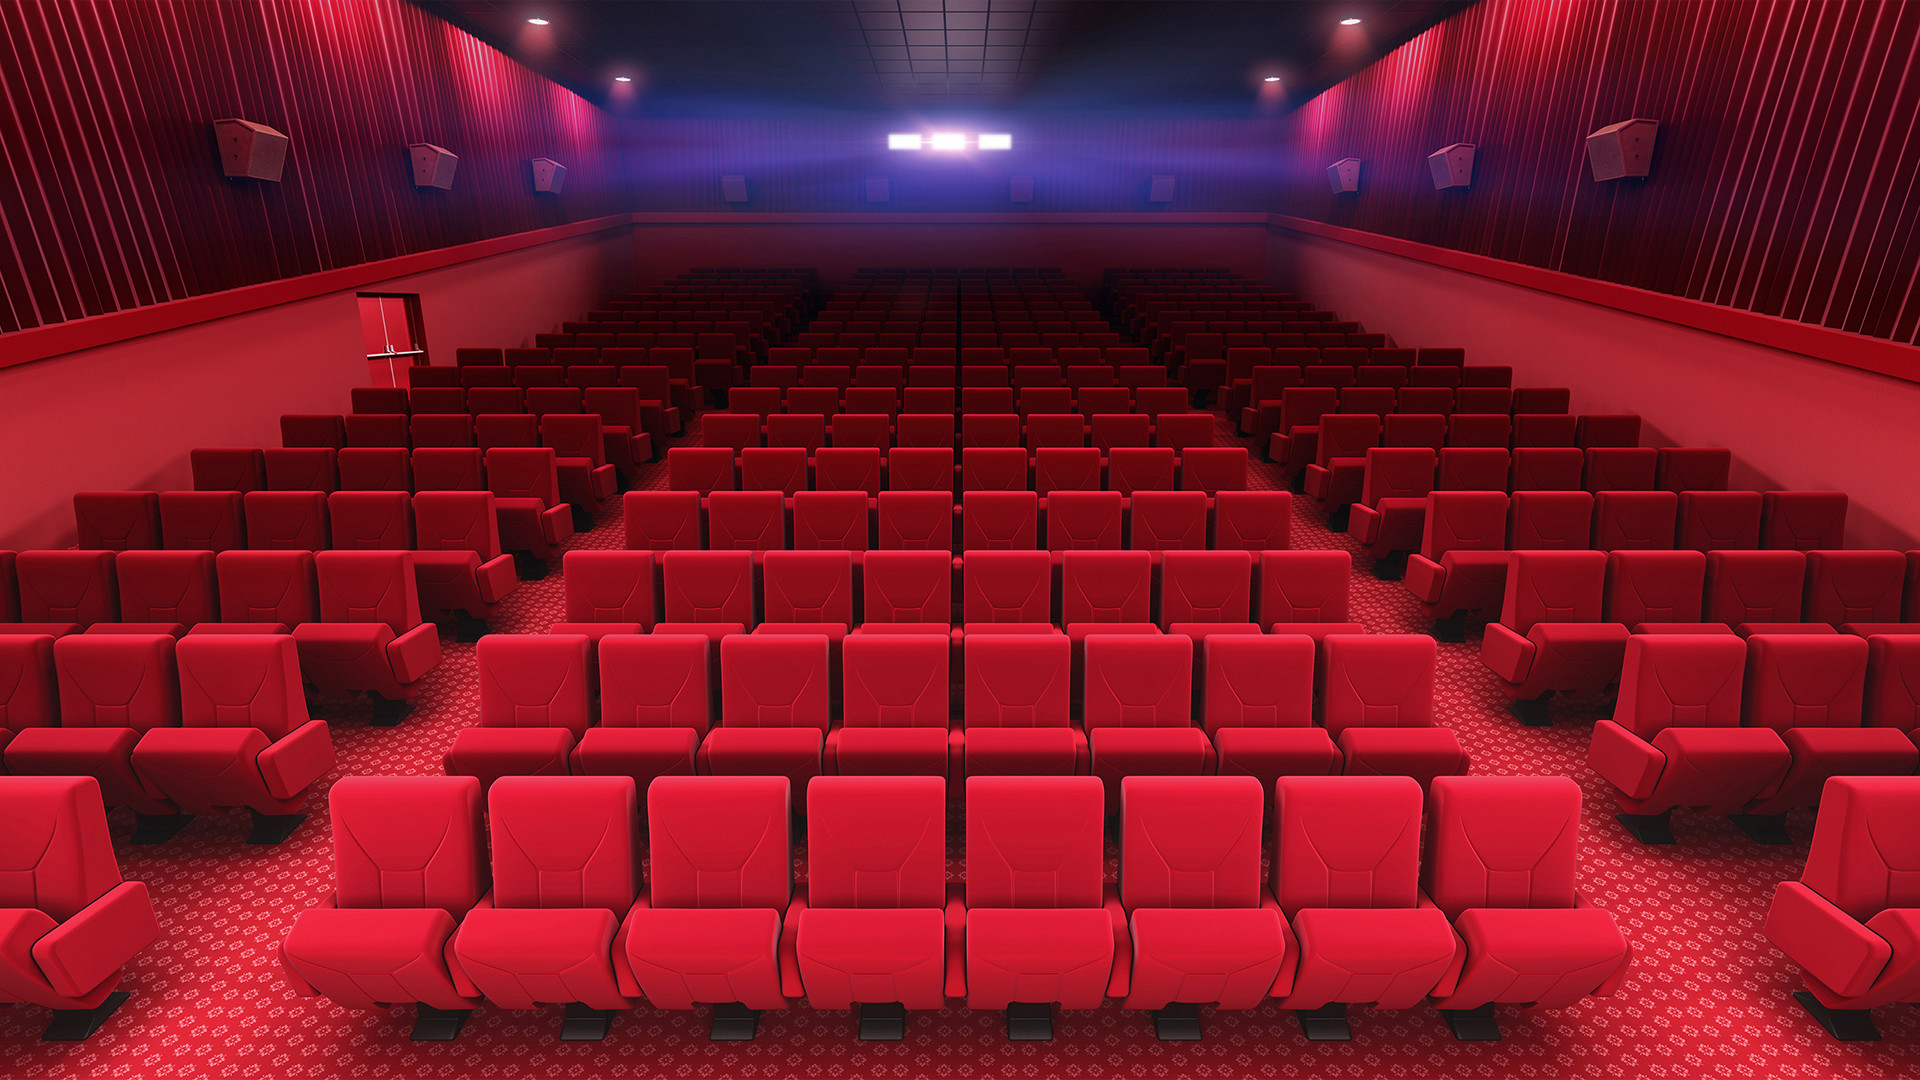 Movie theater wallpaper 59 images for Wallpaper home theater